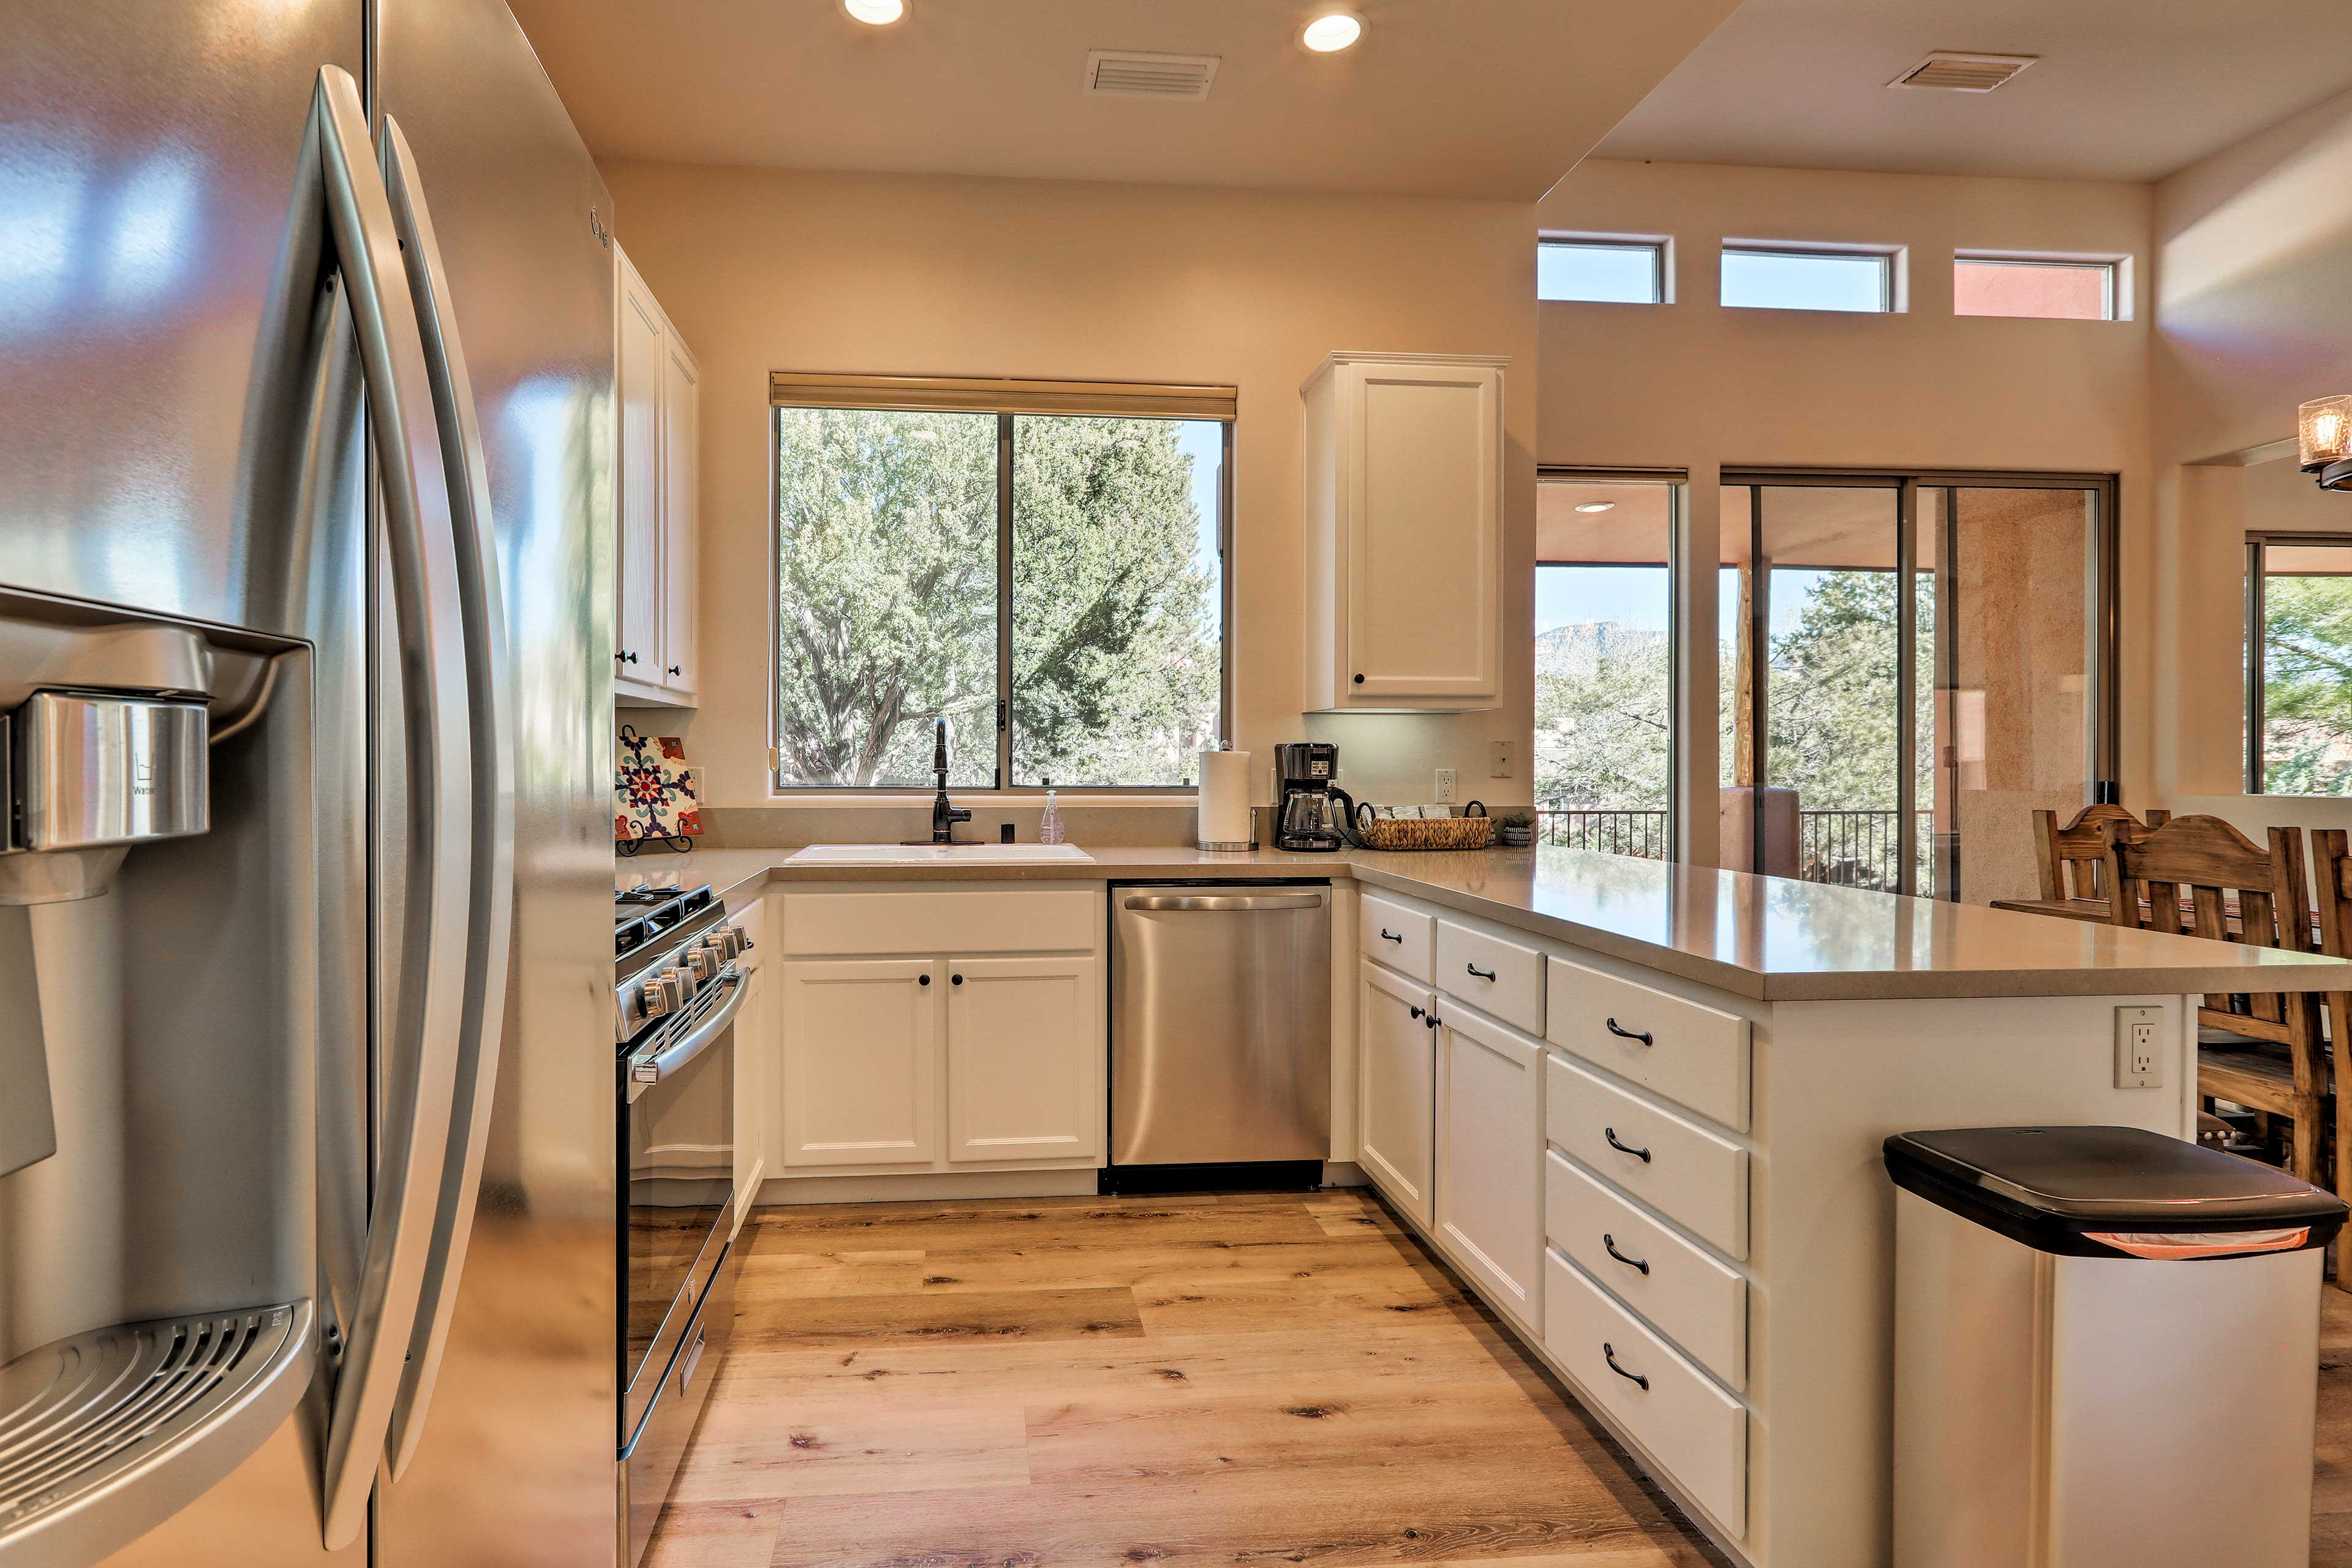 This fully equipped kitchen features all of the bells and whistles!